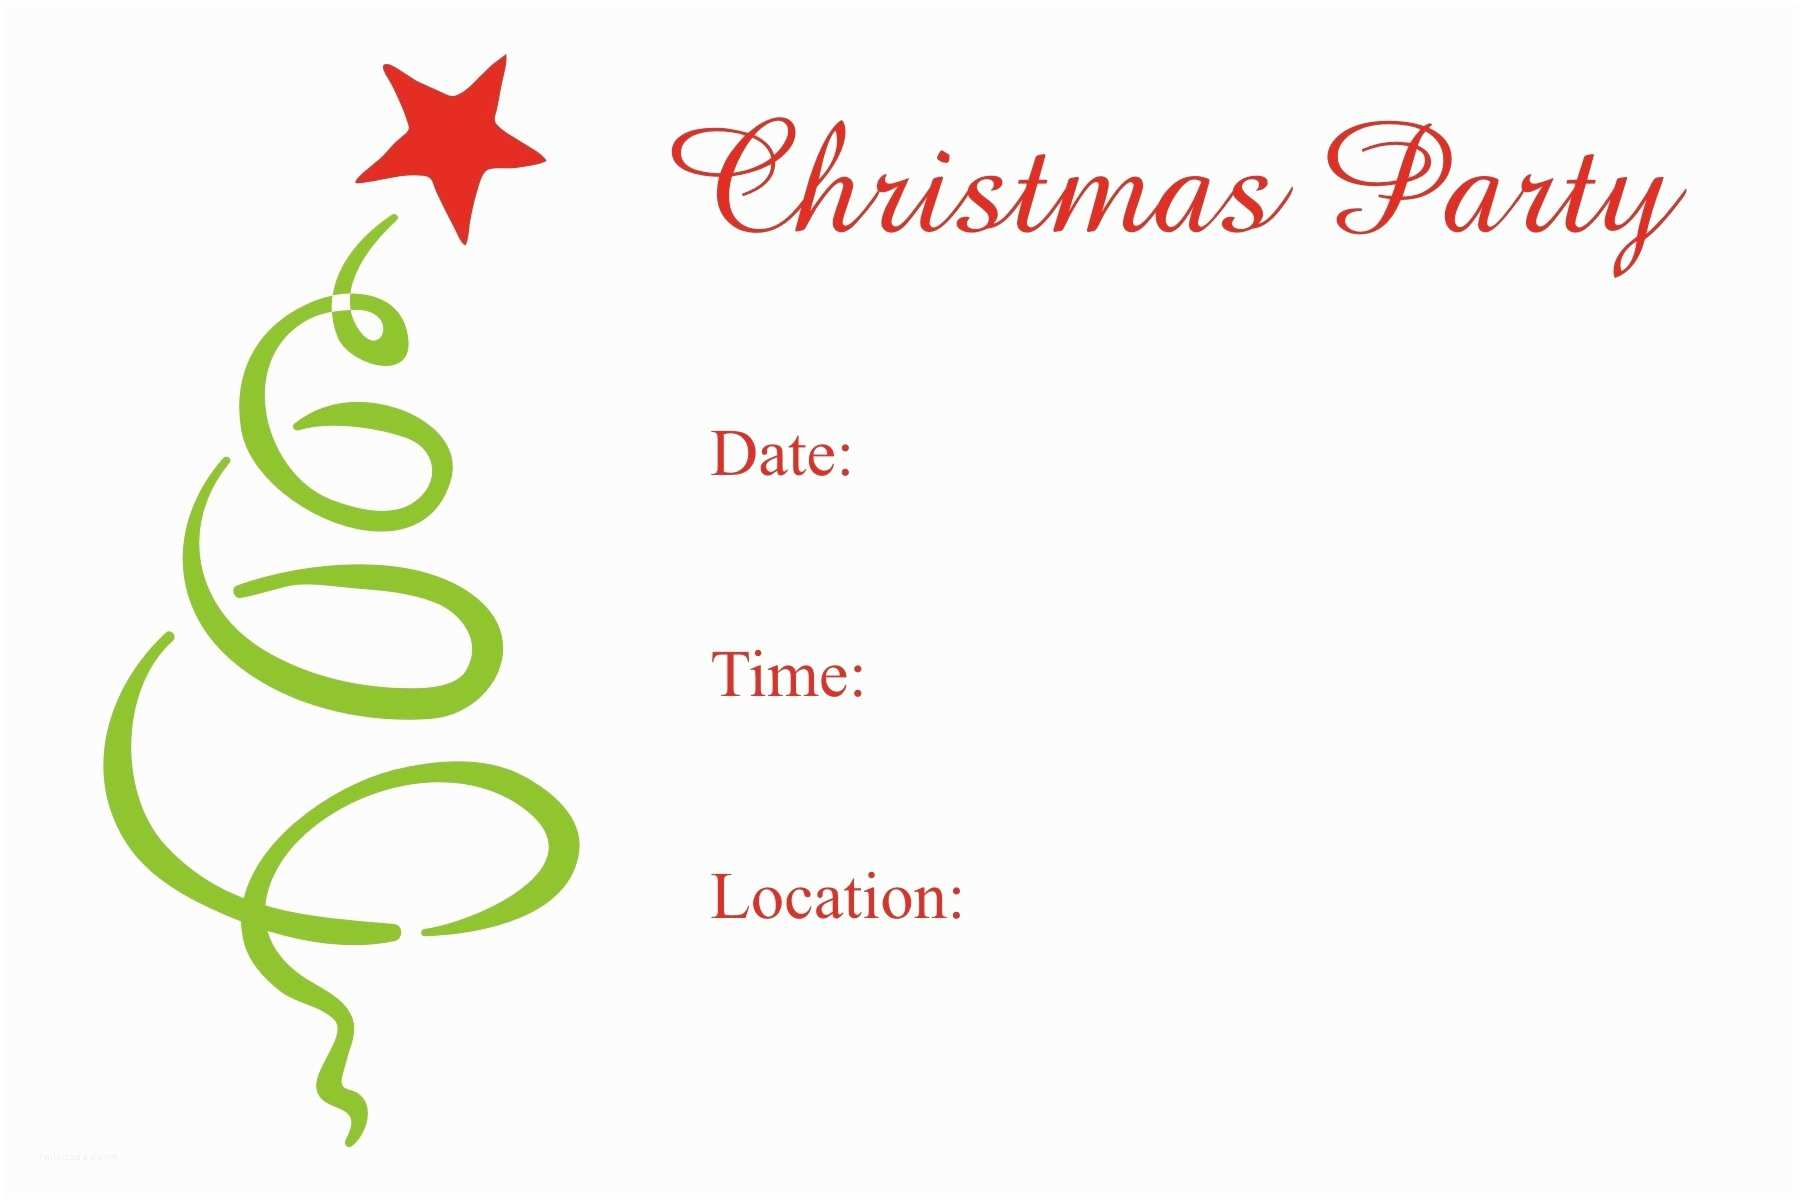 Sample Christmas Party Invitation Sample Christmas Party Invites Eczalinf